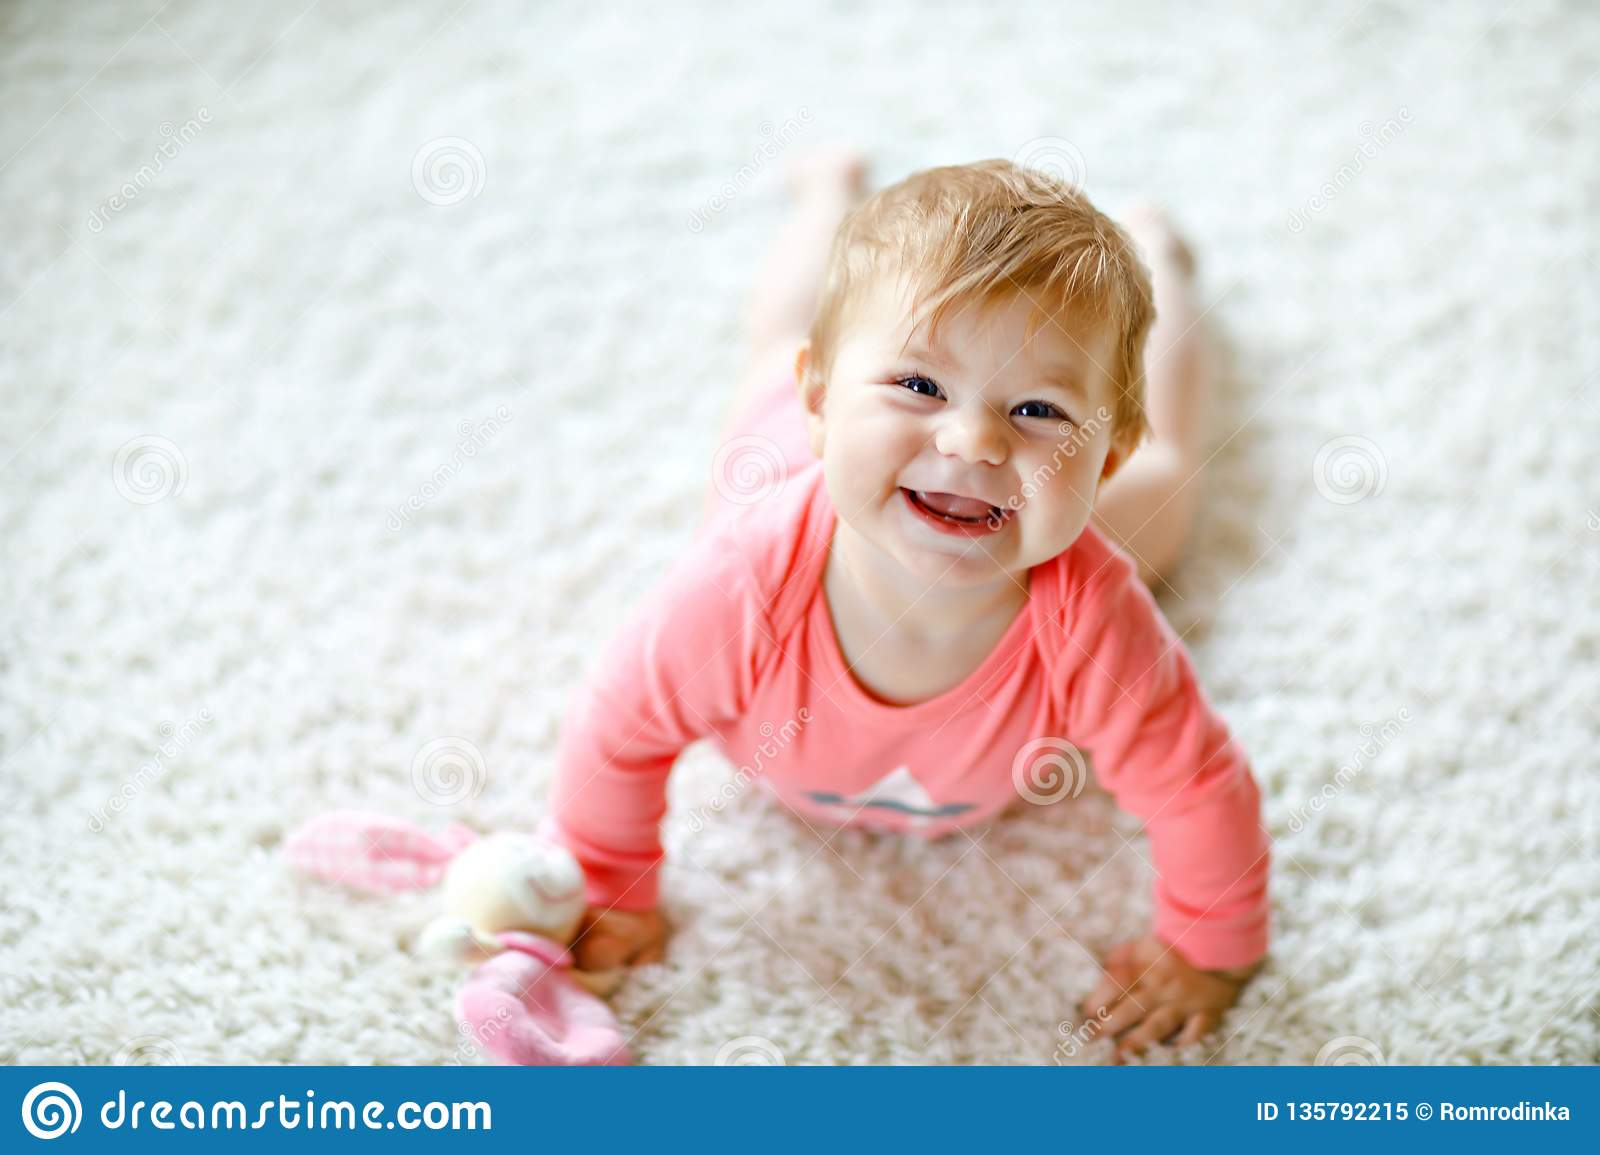 Little cute baby girl learning to crawl. Healthy child crawling in kids room with colorful toys. Back view of baby legs